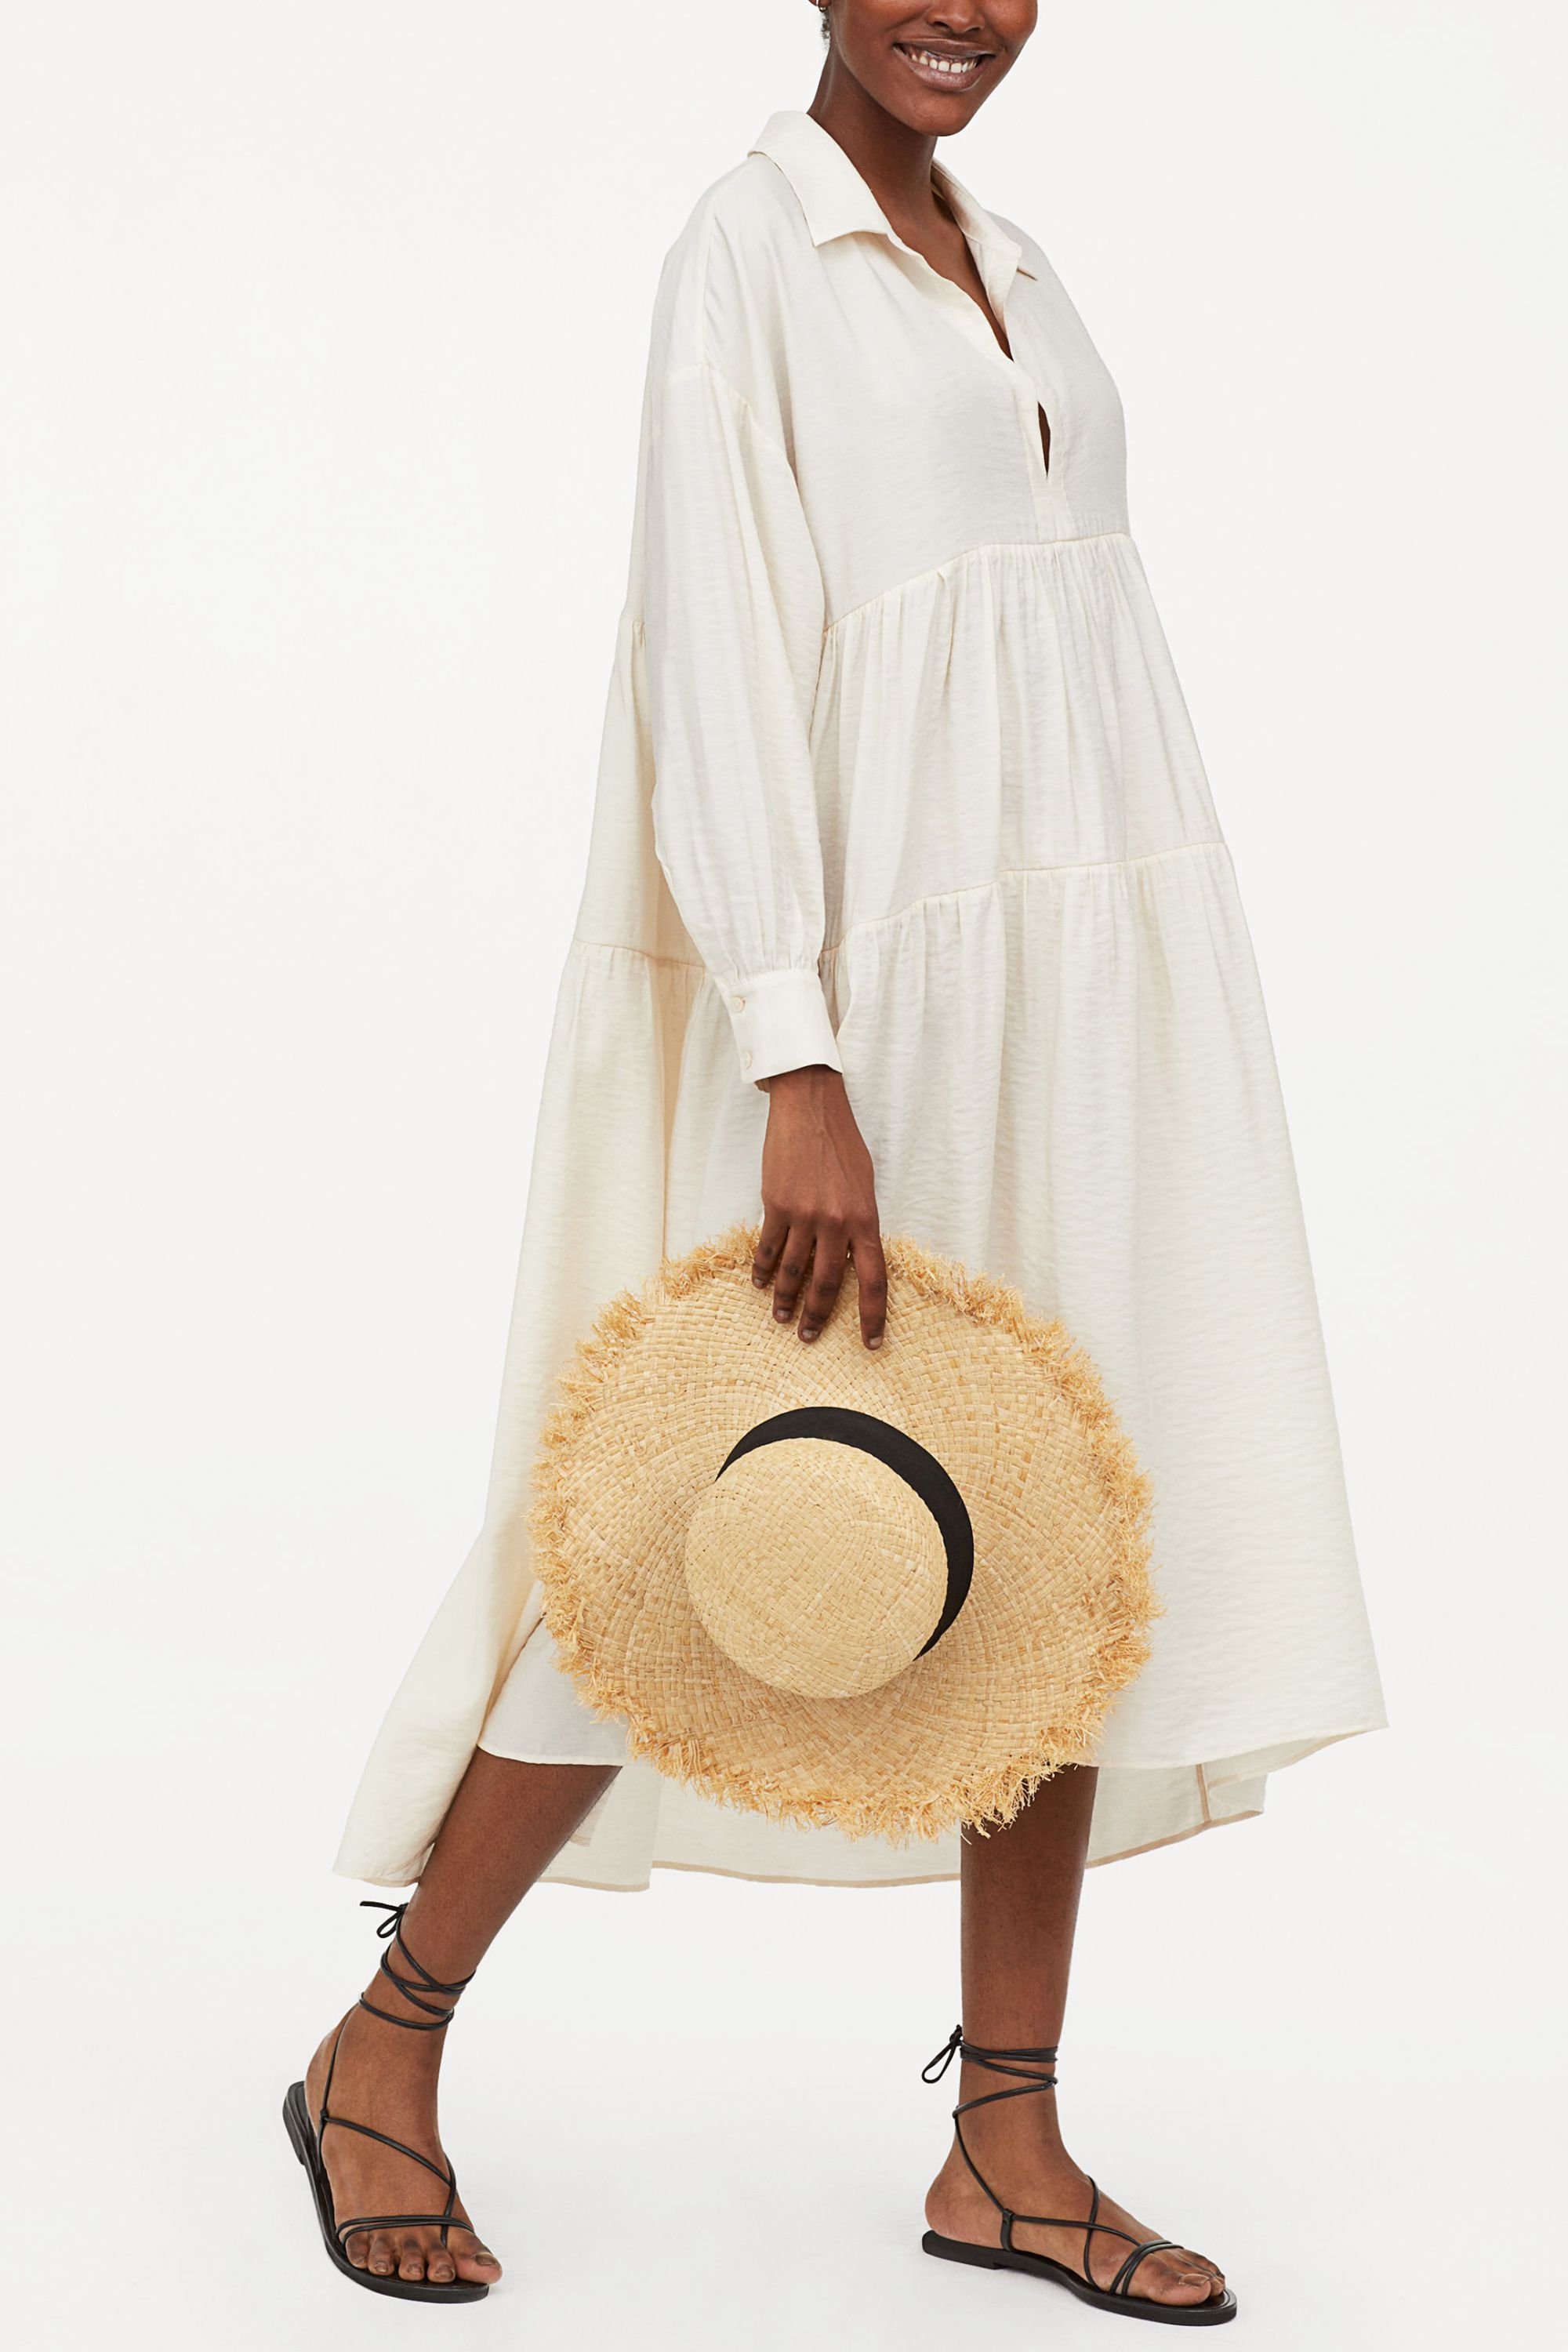 Wide-Cut Dress H&M hm.com $69.99 SHOP NOW A white dress is a summer staple. Paired with lace up sandals and a straw hat, this outfit will never go out of style.